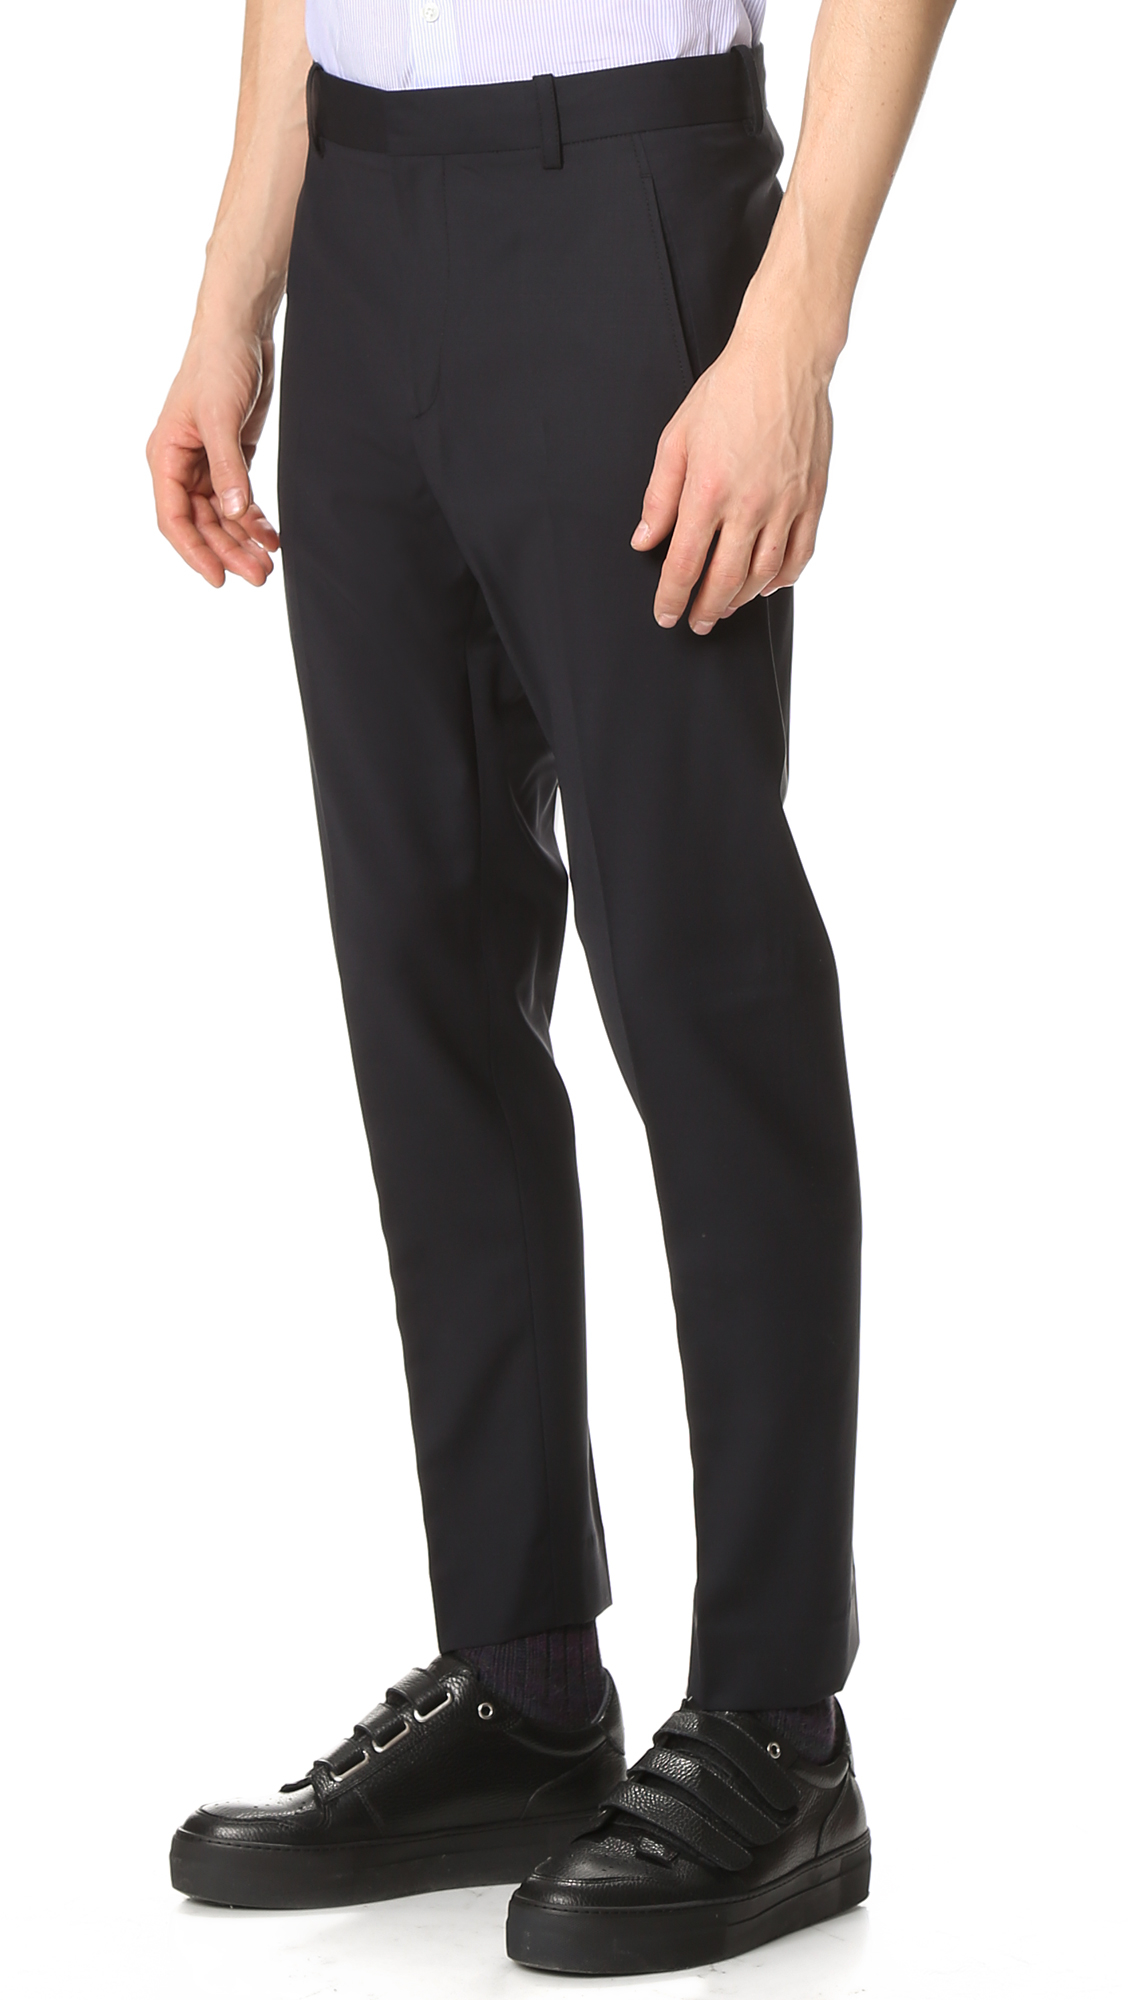 3.1 Phillip Lim Wool Tapered Trousers With Dart Pockets in Midnight (Black) for Men